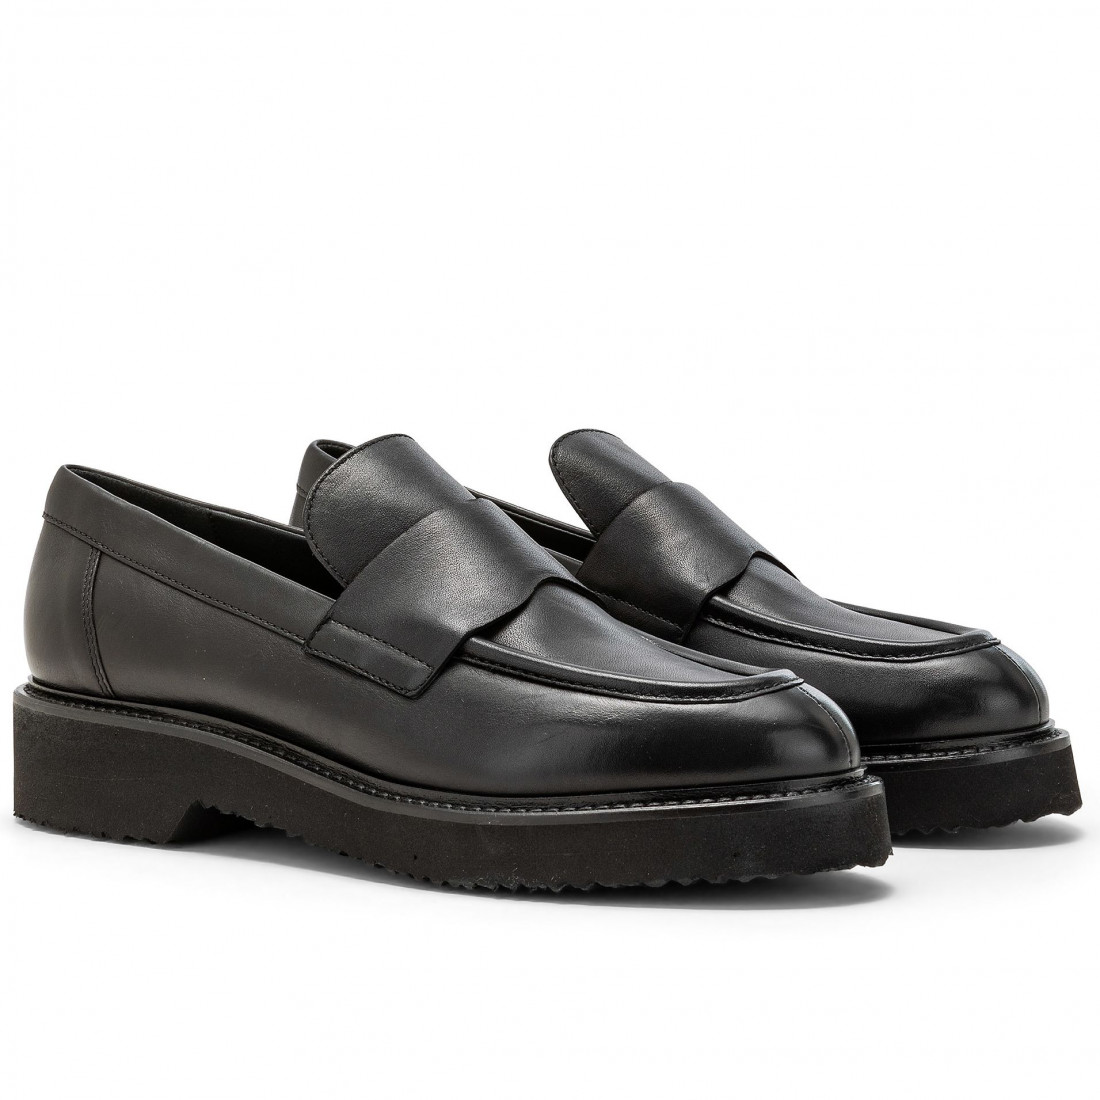 loafers woman carmens a46069nero 7842